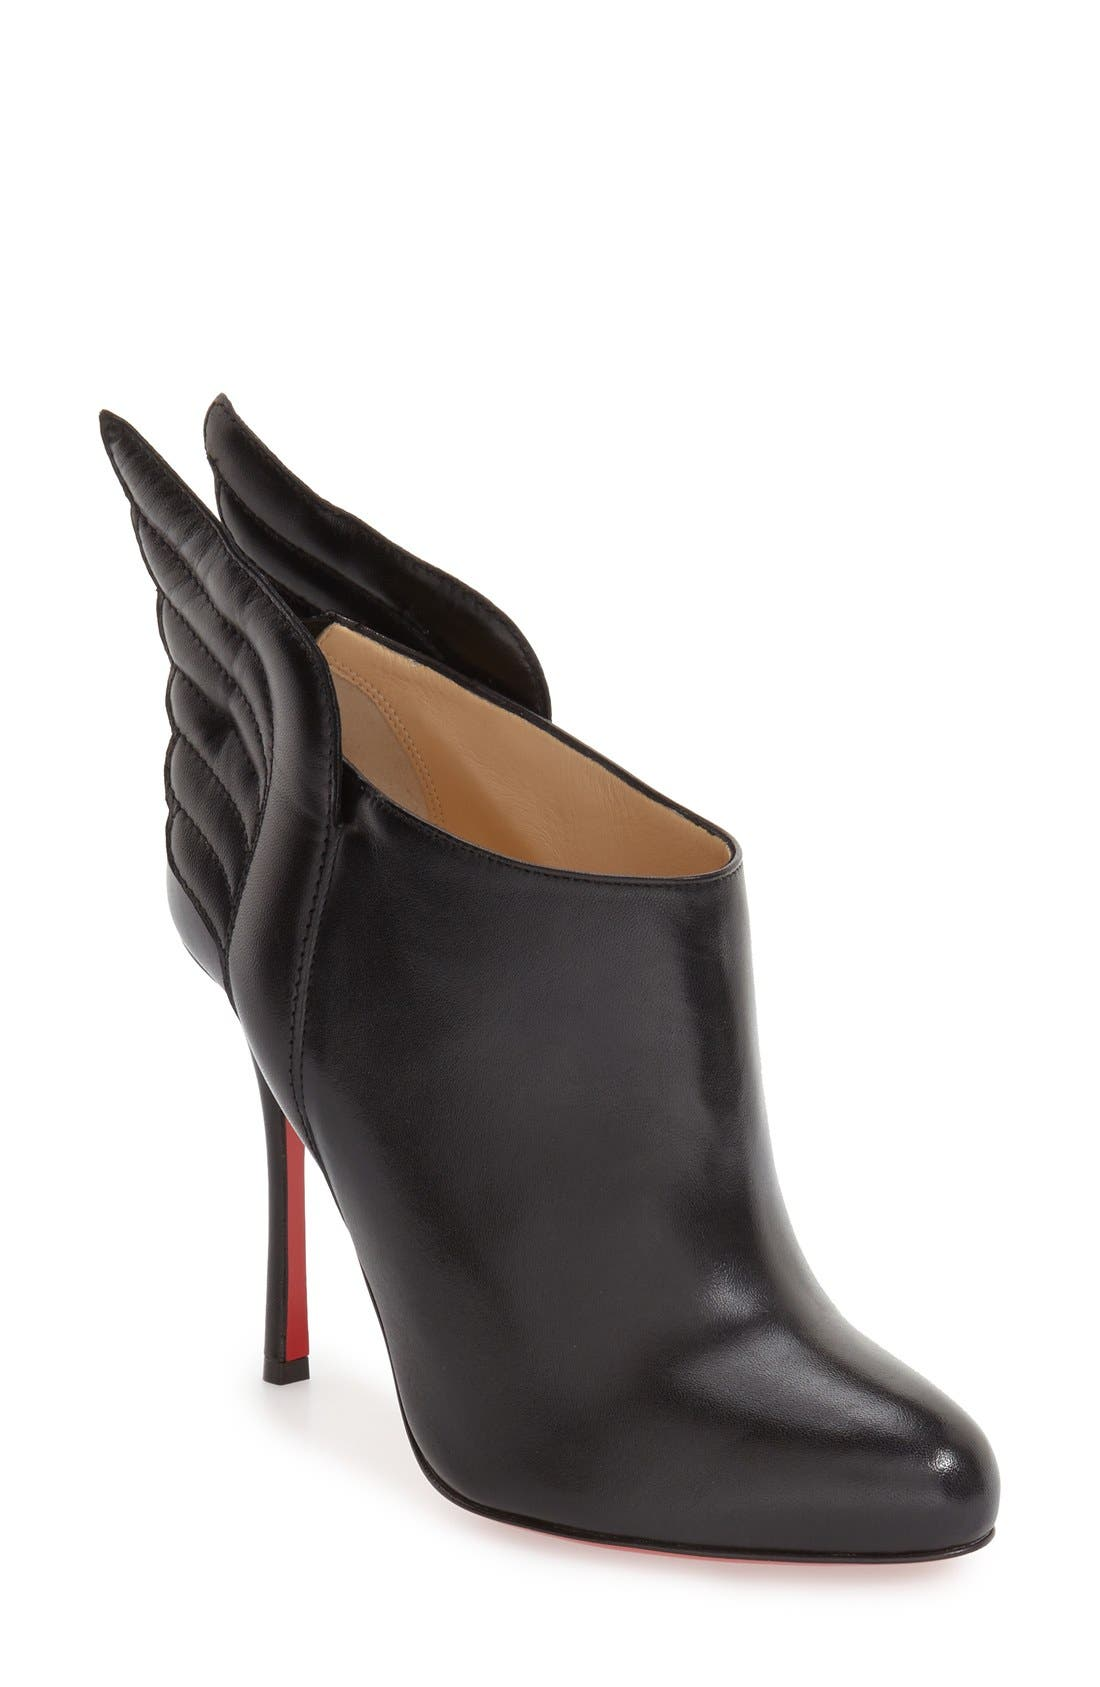 Alternate Image 1 Selected - Christian Louboutin 'Mercura' Bootie